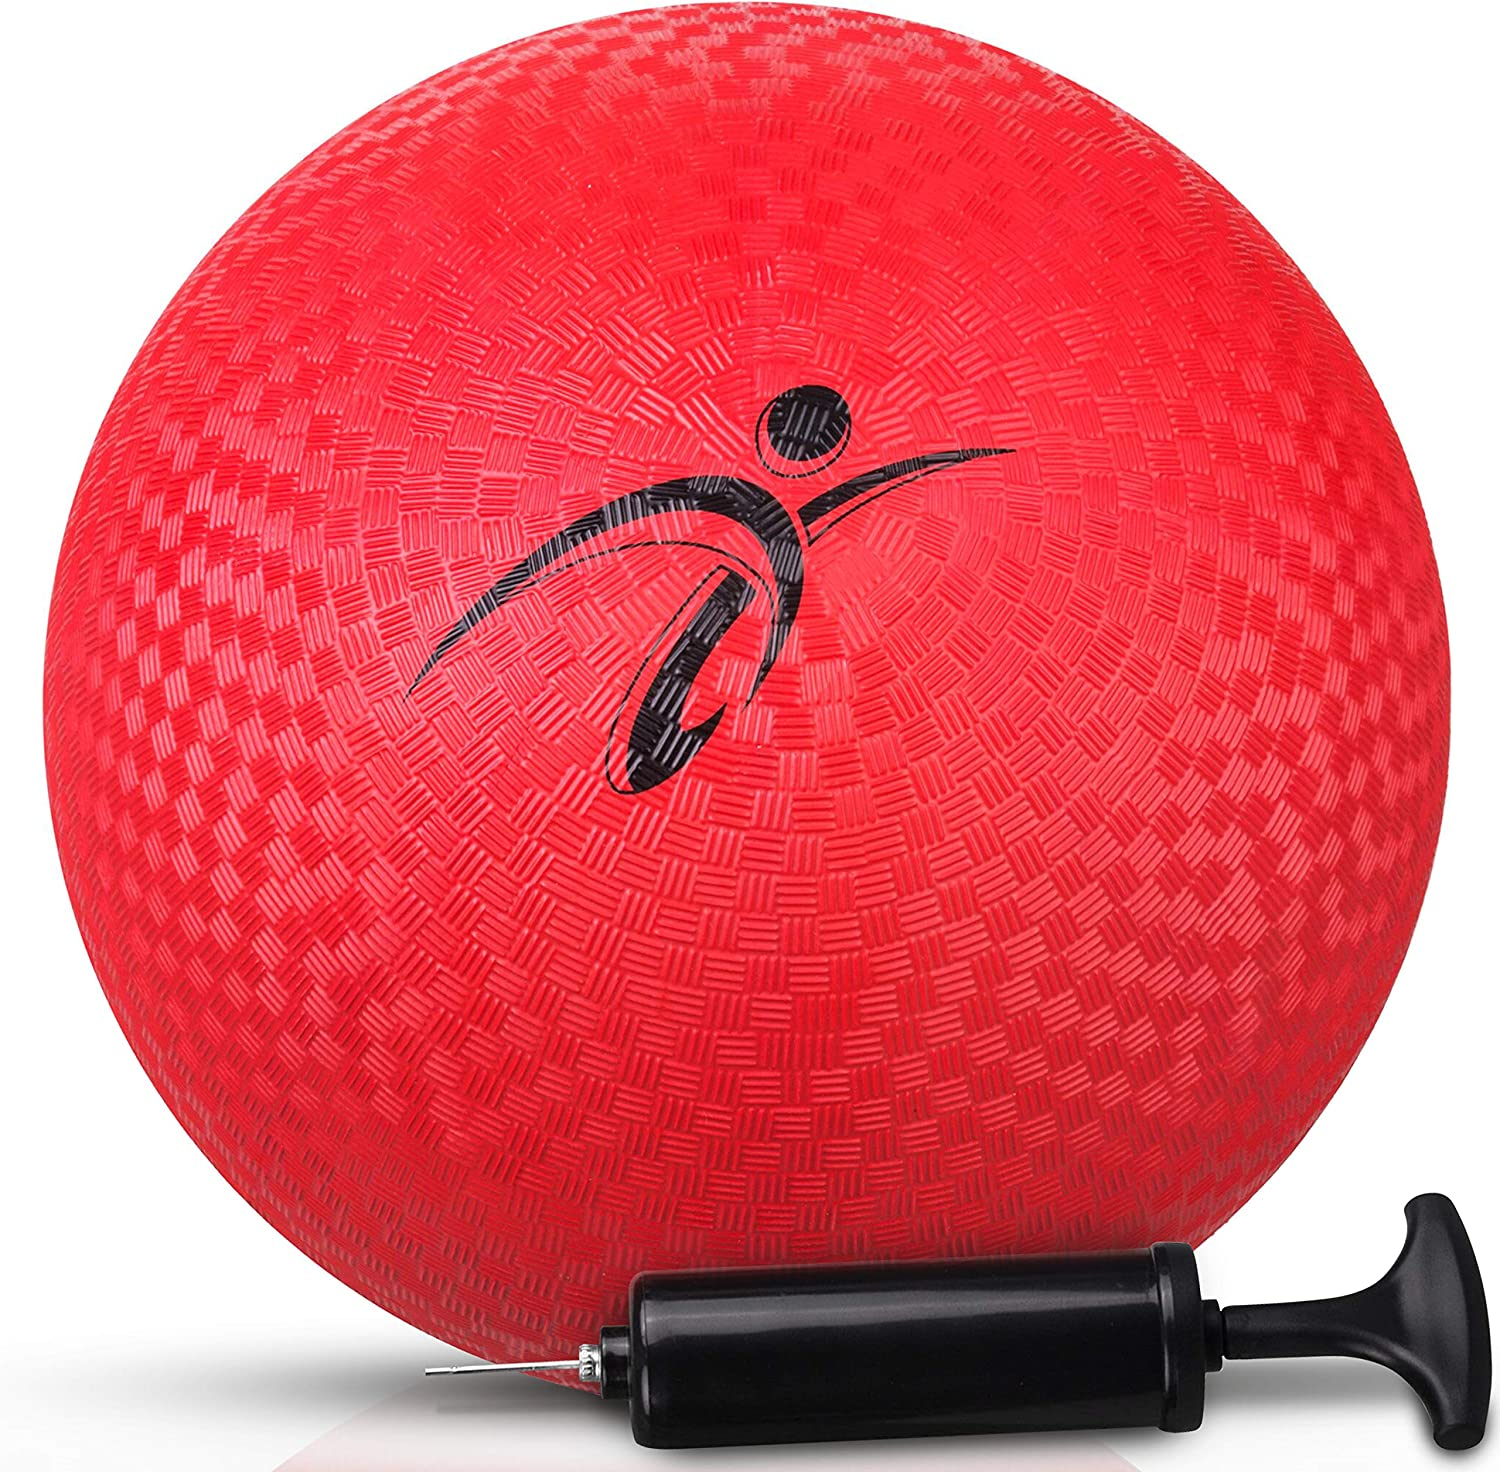 Fitness Factor Playground Kickball with Air Pump for Inflatable, Perfect Rubber Bouncy Dodgeball for Indoor, Outdoor Ball Games, Official Size Four Square Ball and Handball for Kids 10 Inch